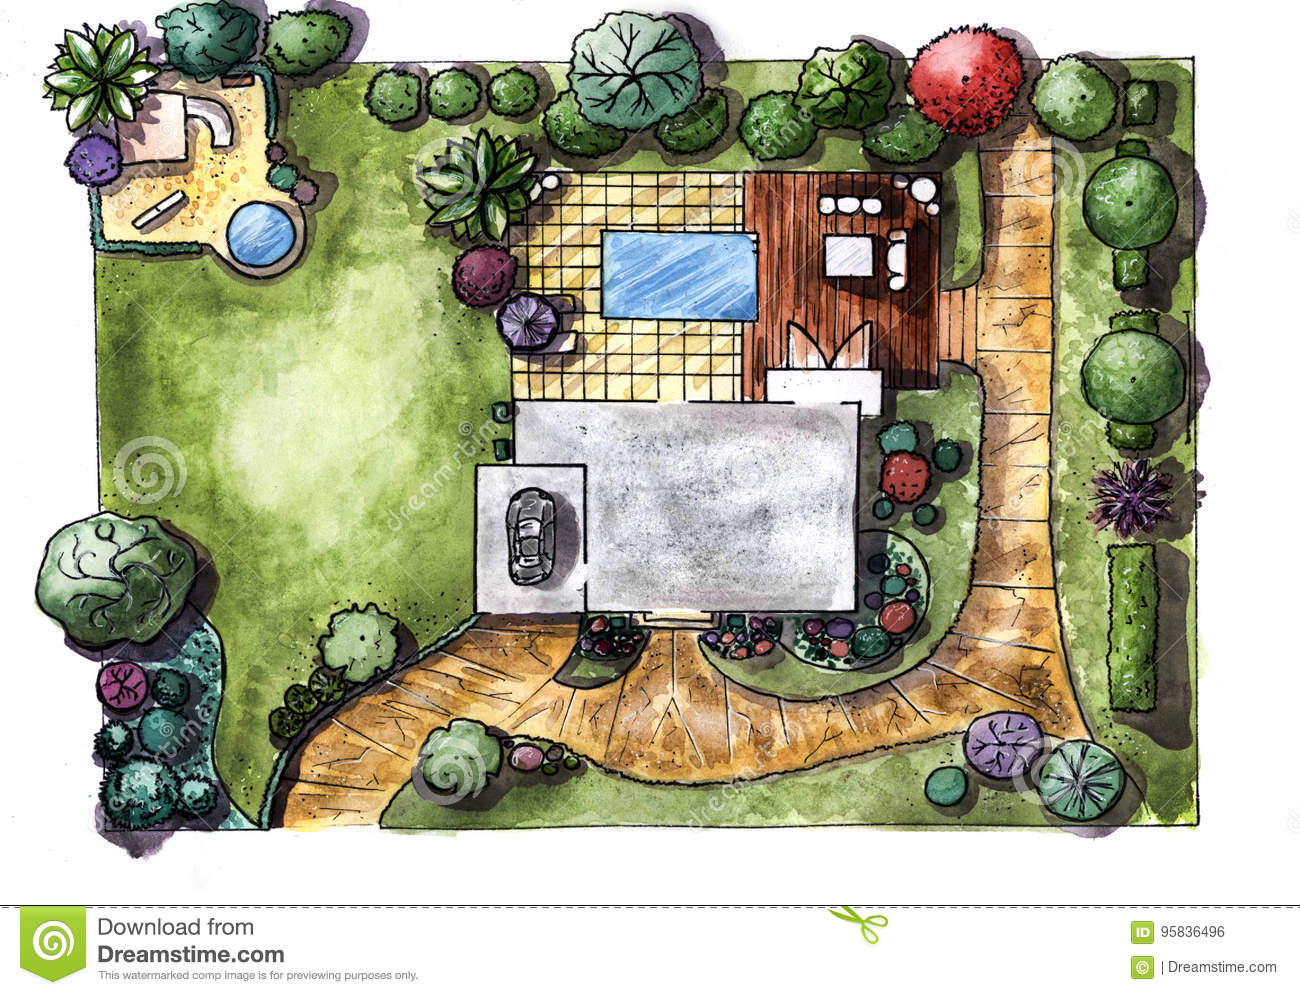 Drawing House Garden Cottage. The View From The Top Stock ... on roof garden design, florida garden design, interior garden design, tree garden design, landscape design, home and garden design, garden design product, beautiful garden design, city garden design, garden sheds, small front yard design, food garden design, japanese garden design, garden stage design, small garden design, kitchen design, vertical garden design, herb garden design, greenhouse design, garden bedroom design,